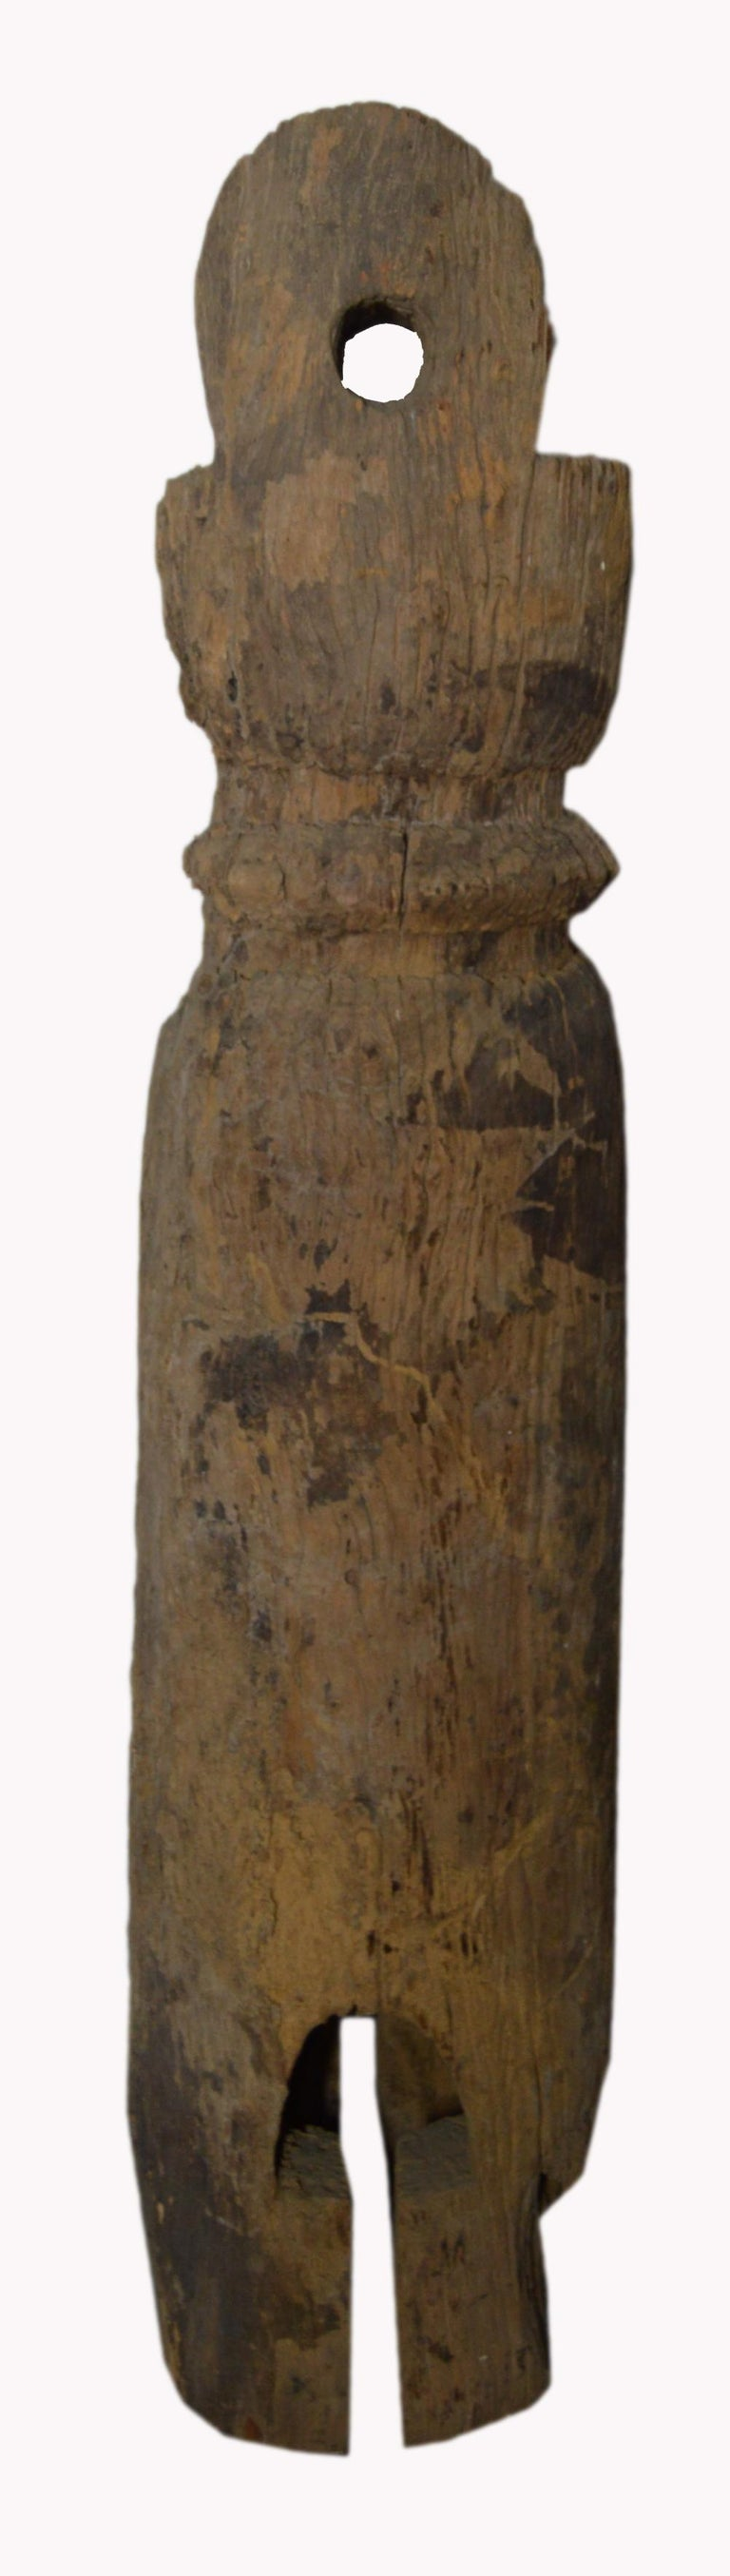 Antique Rustic Hand-Carved 19th Century Northern Thai Cylindrical Pole Sculpture In Fair Condition For Sale In Yonkers, NY